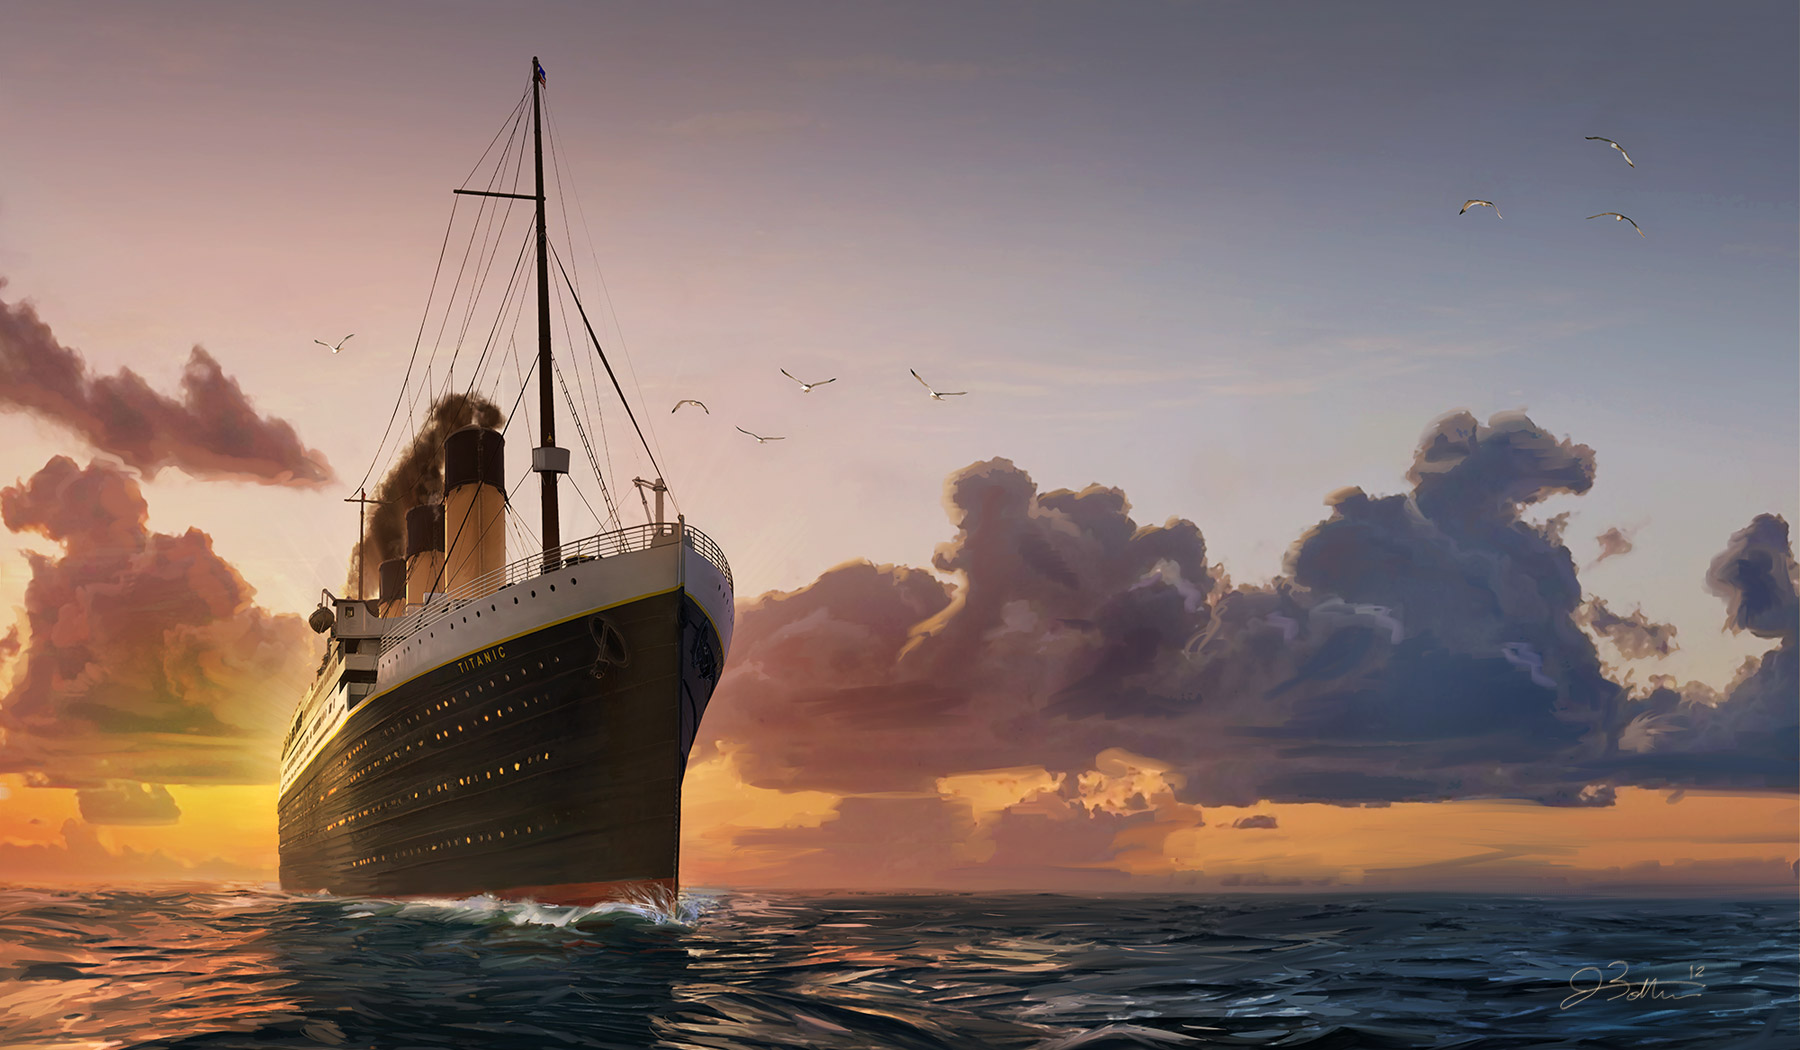 the liesson of life is uncertain in titanic Analysis of the titanic, by james cameron essay:: 3 works cited length: 1855 titanic by james cameron essay - titanic, both the movie and above all the lesson: that life is uncertain, the future unknowablethe unthinkable possible.